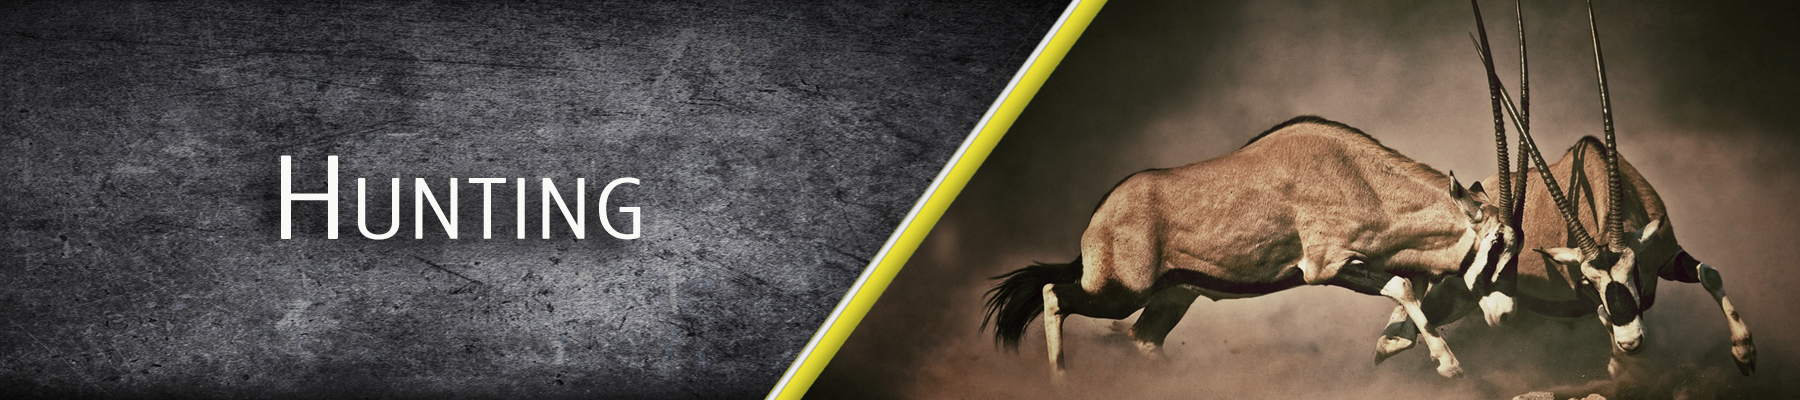 HUNTING-BANNER